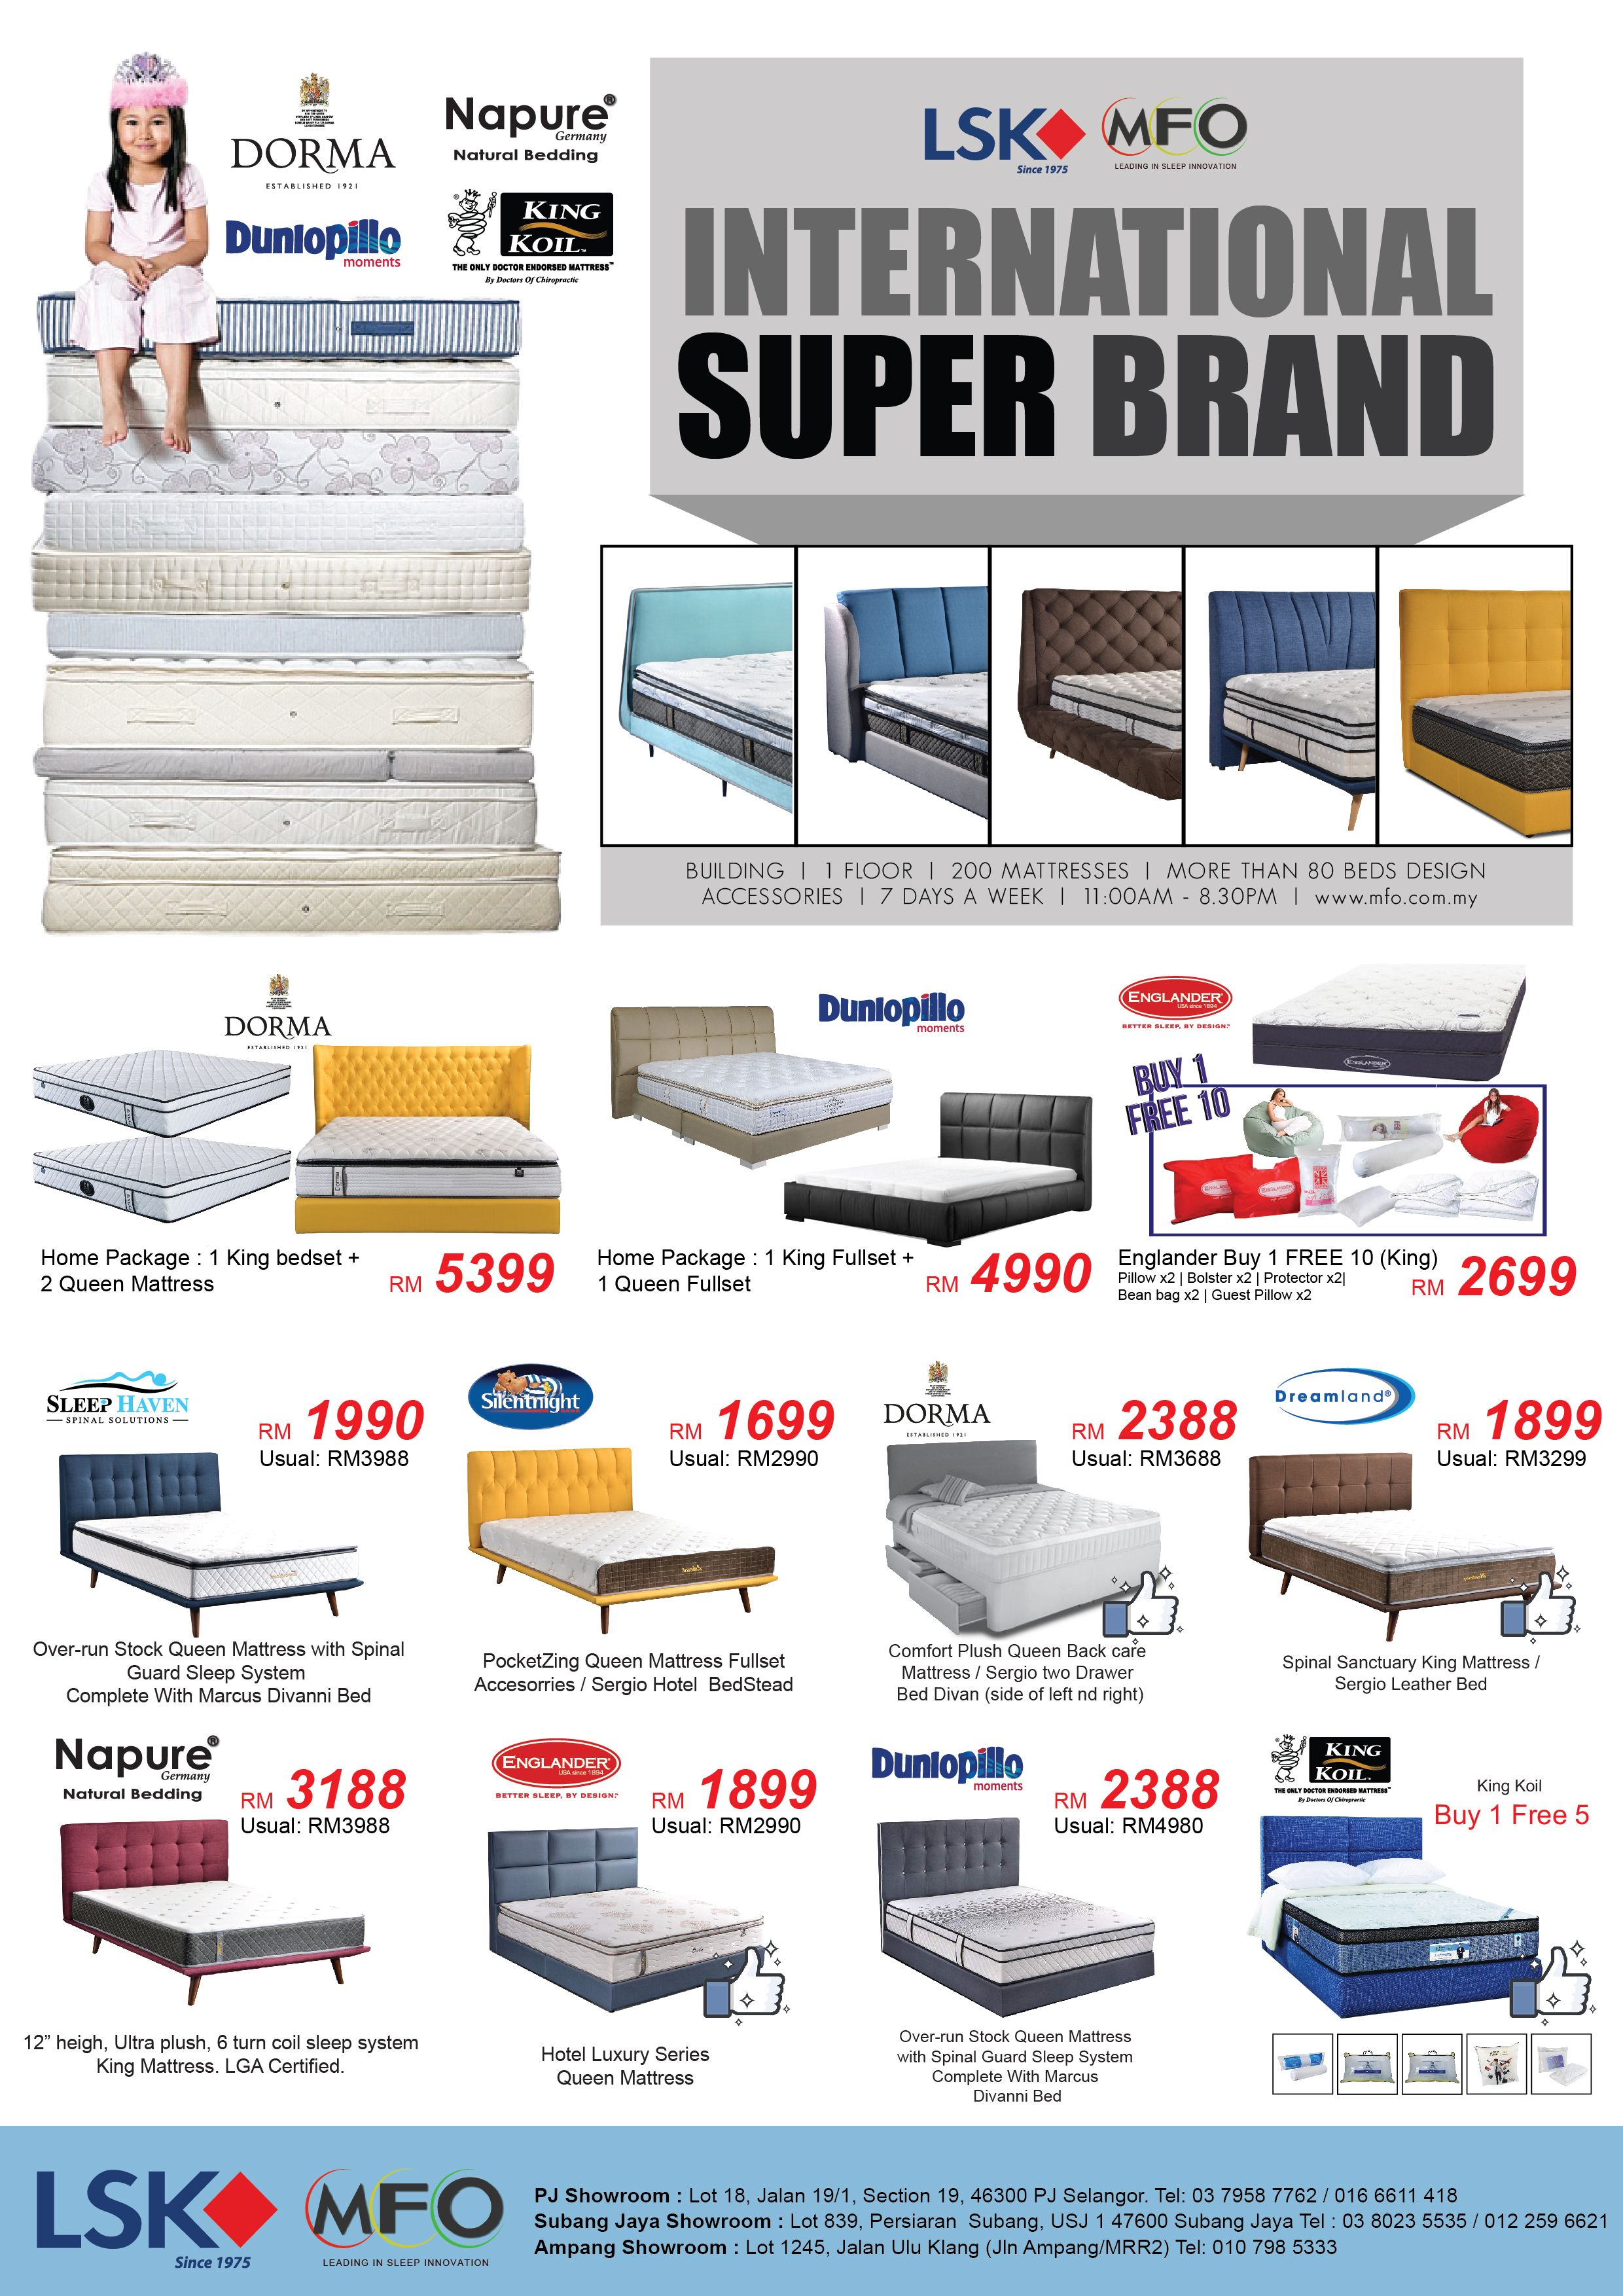 Do You Know Dorma Napure Are Under The Malaysia Top 10 Mattress And Englander Brand Consecutively In The Us Mattress On Floor Top 10 Mattresses Bed Design